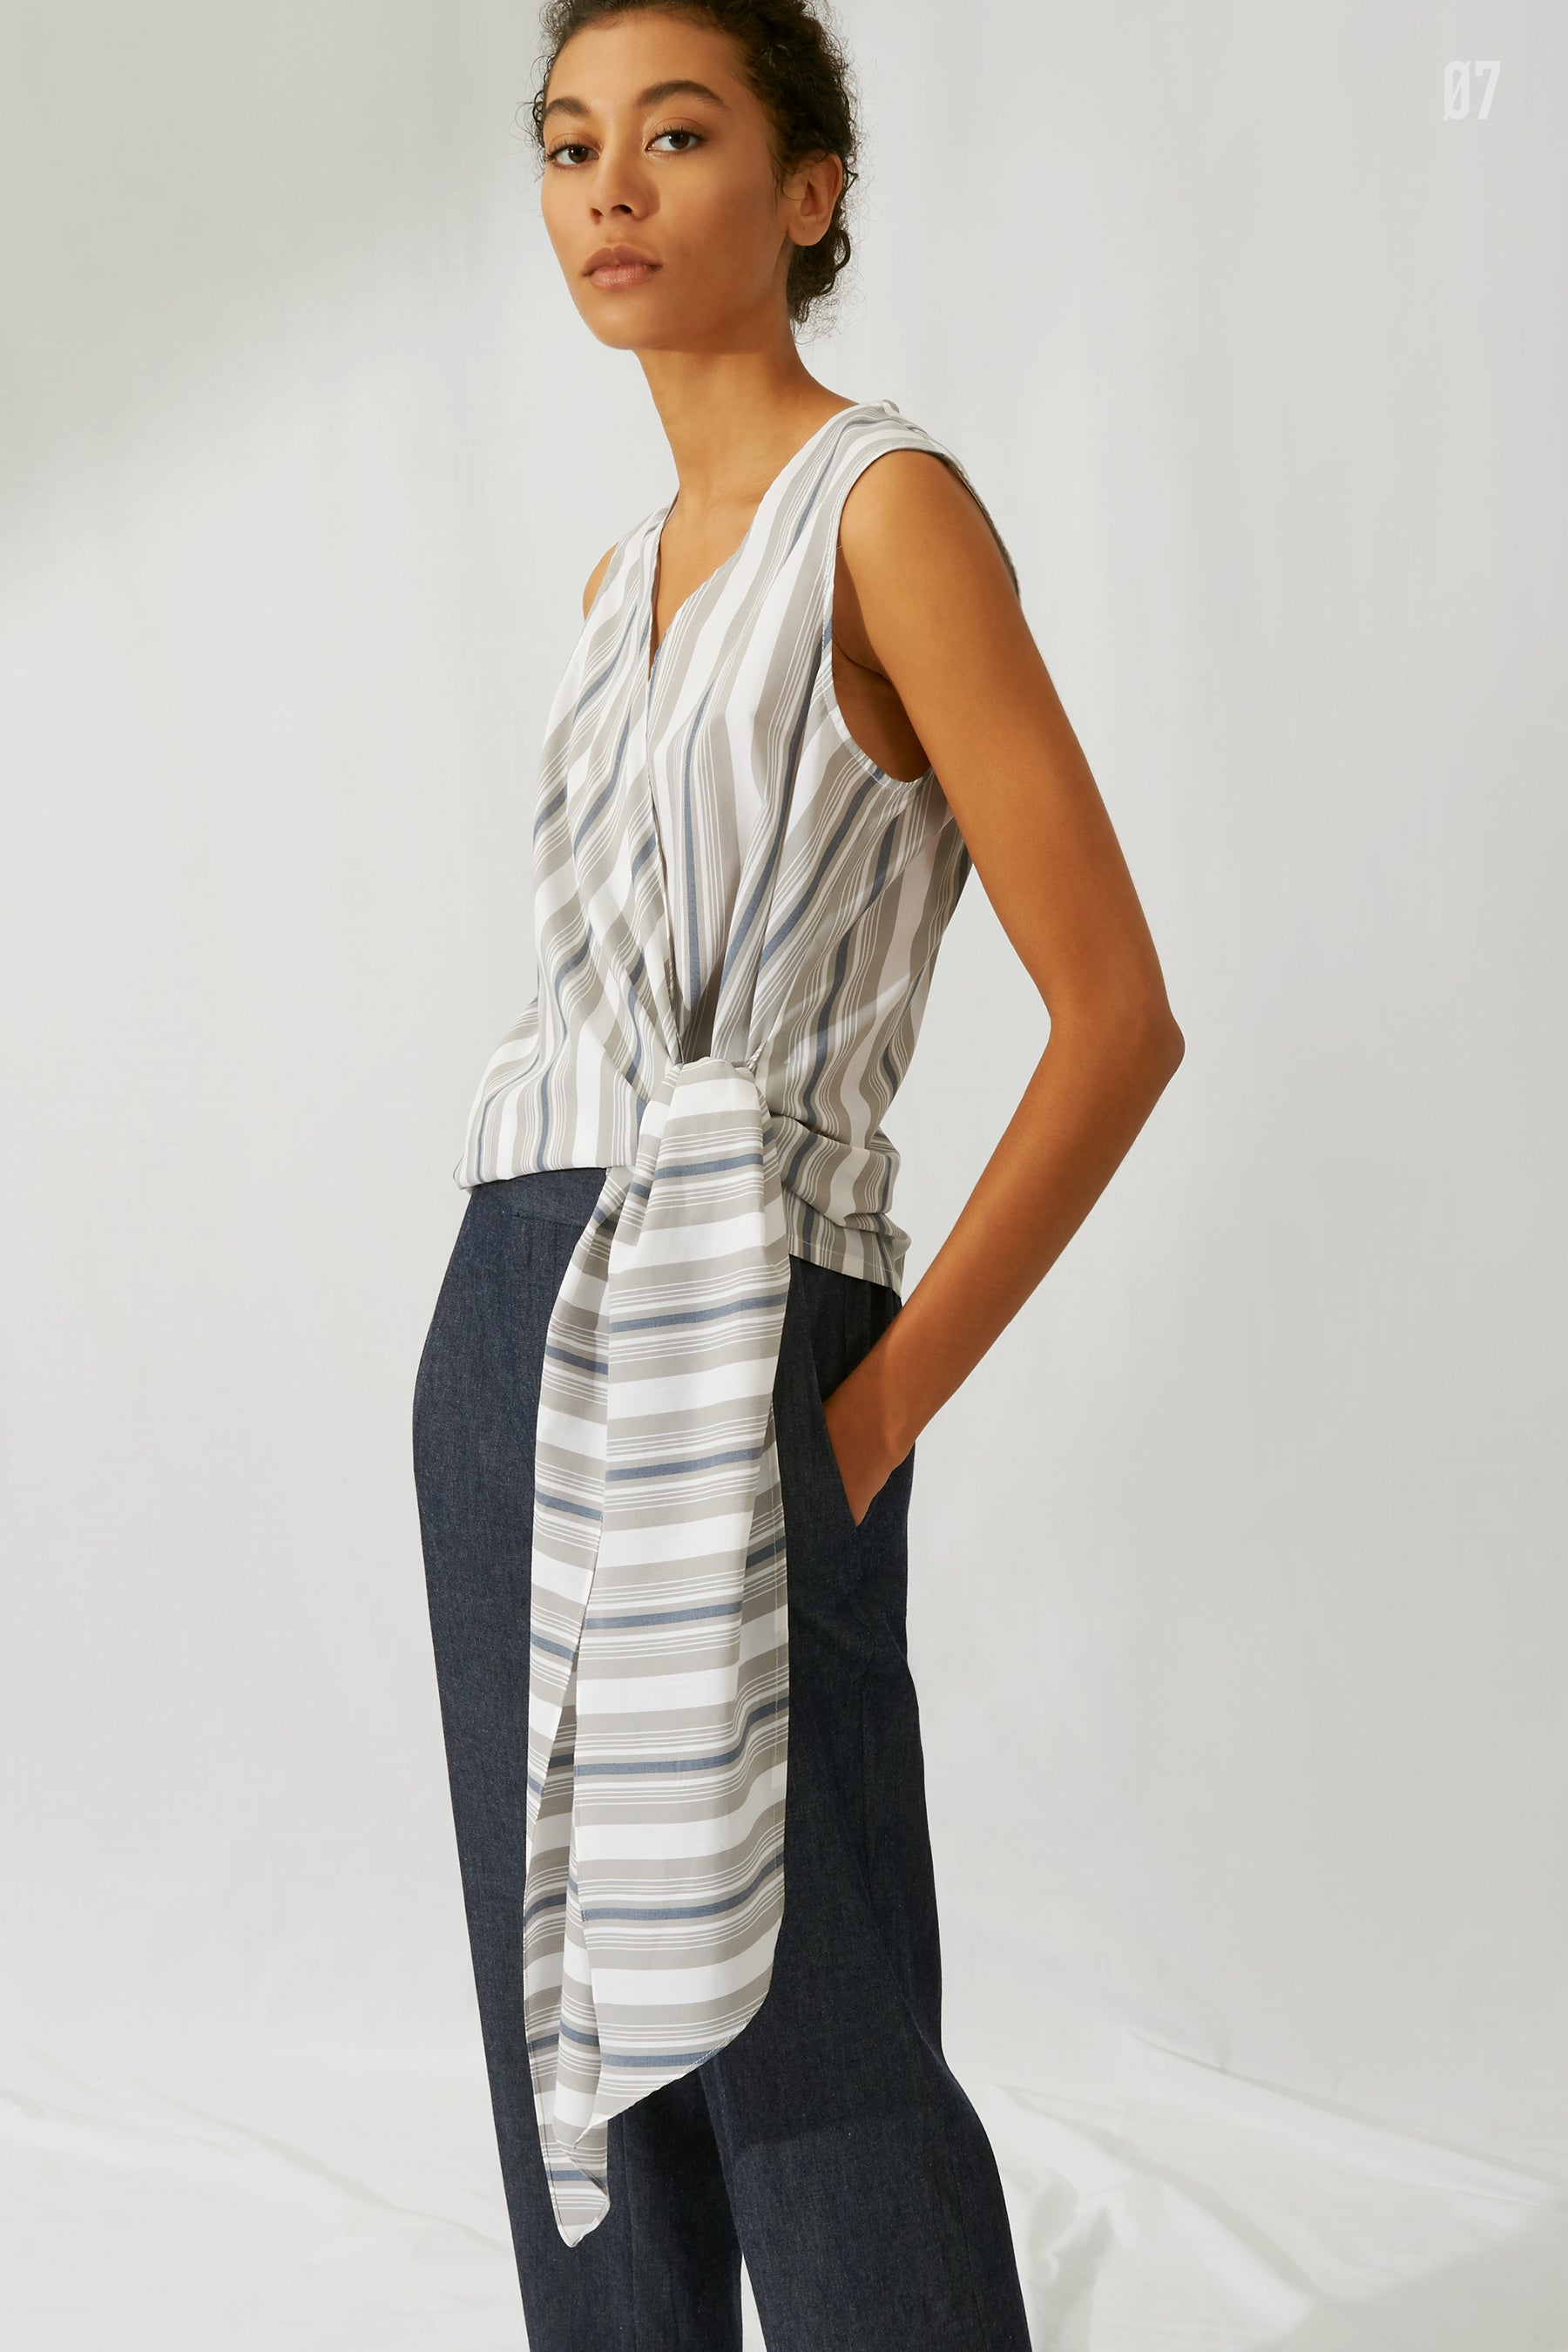 Kal Rieman Spring 2020 Lookbook Look 7